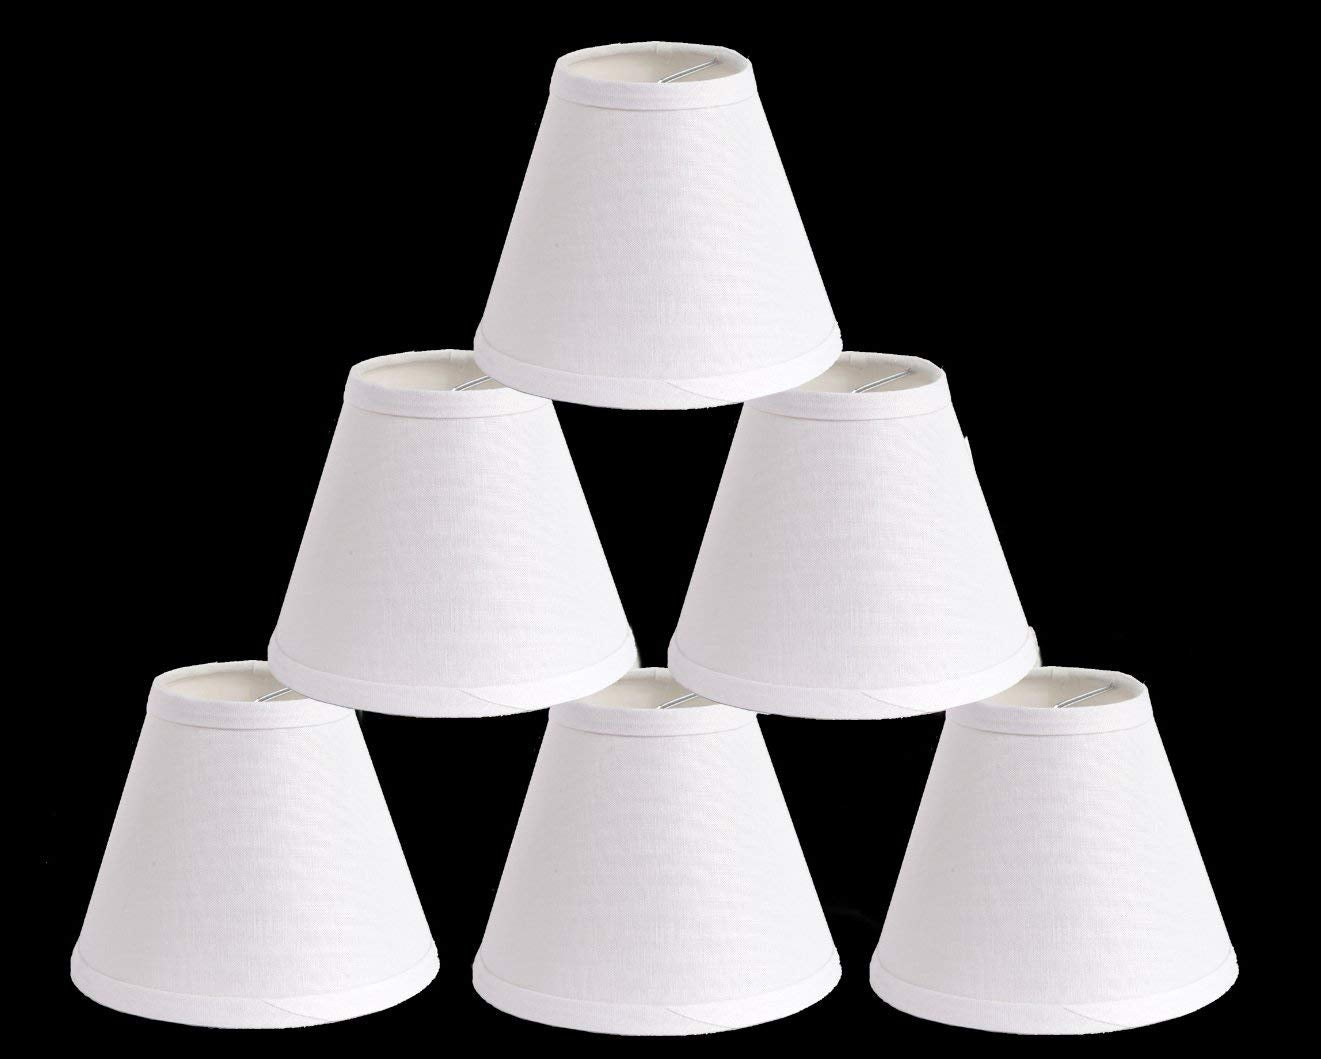 Urbanest Pure Linen Chandelier Lamp Shades, 6-inch, Hardback Clip On, White(set of 6)